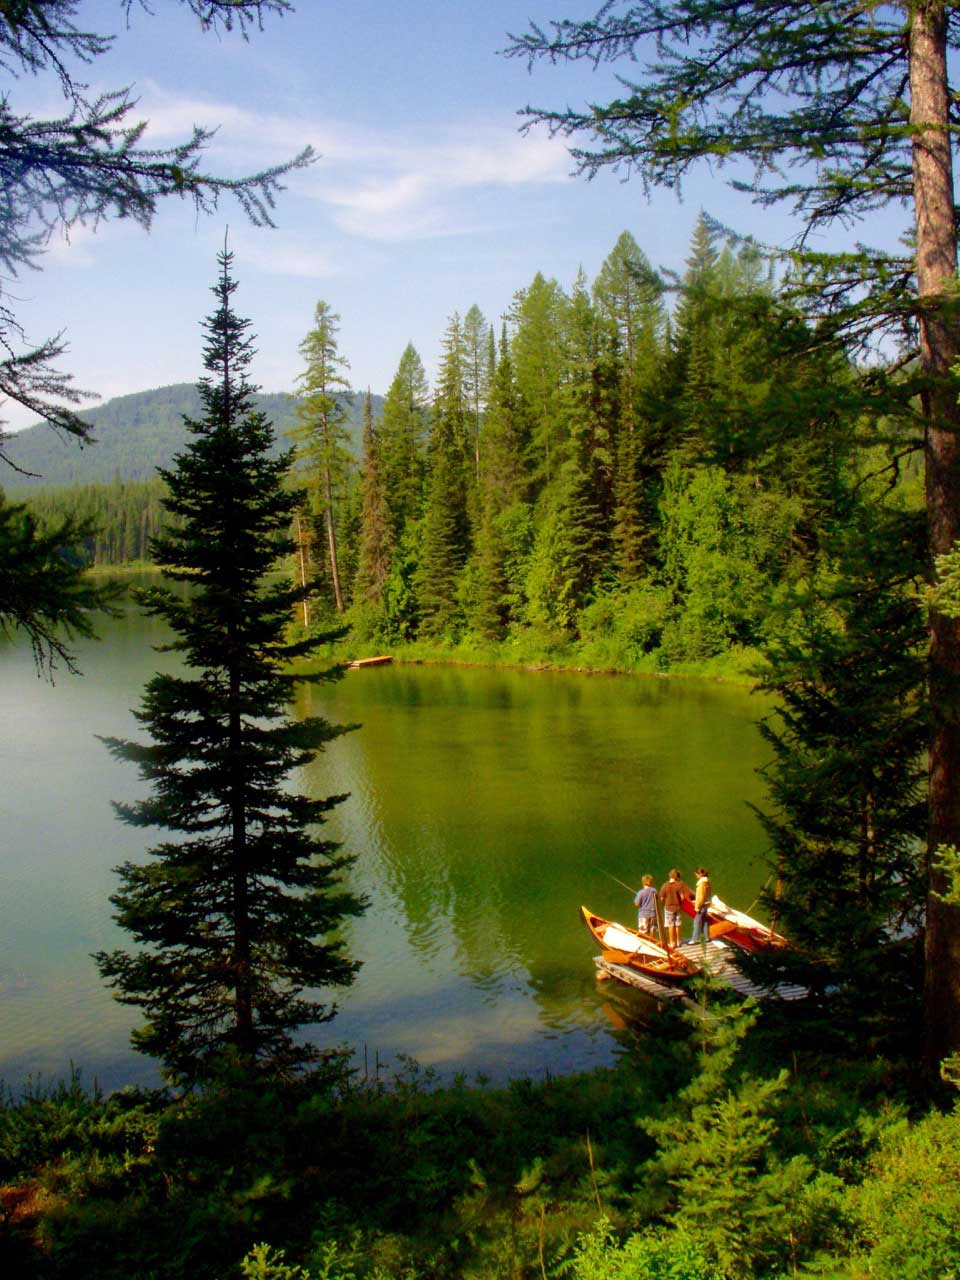 Fishing, and canoeing are just a couple of the activities you'll enjoy.